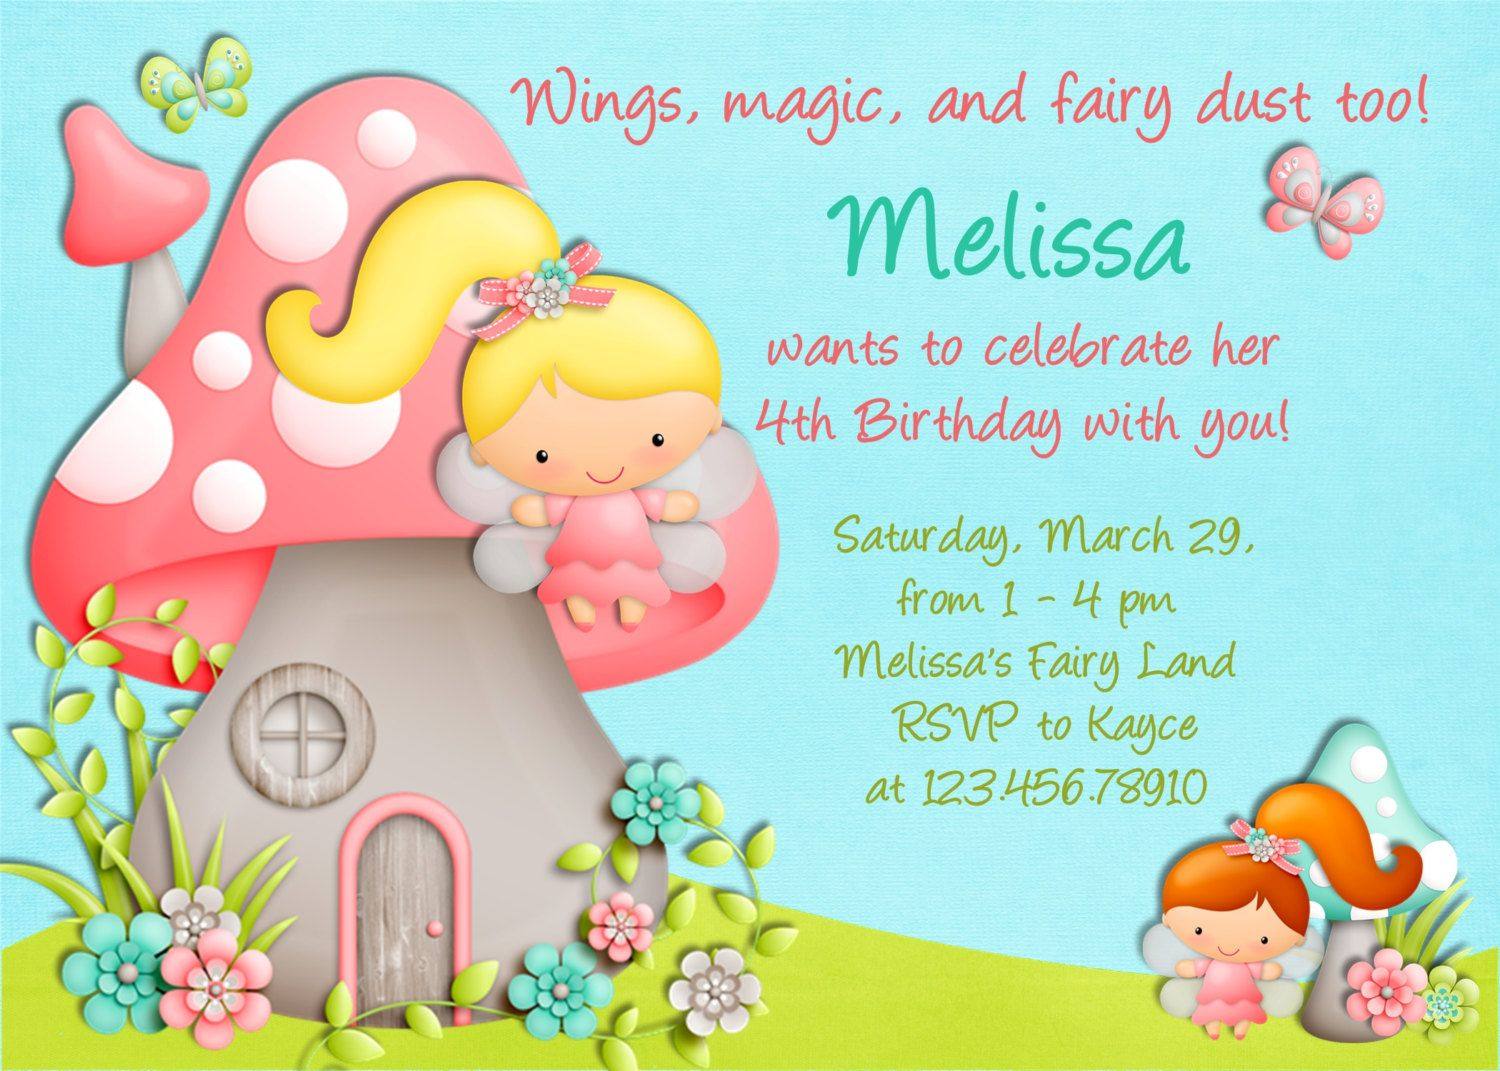 Fairy birthday invitation printable custom fairy invite 1600 fairy birthday invitation printable custom fairy invite 1600 via etsy filmwisefo Choice Image